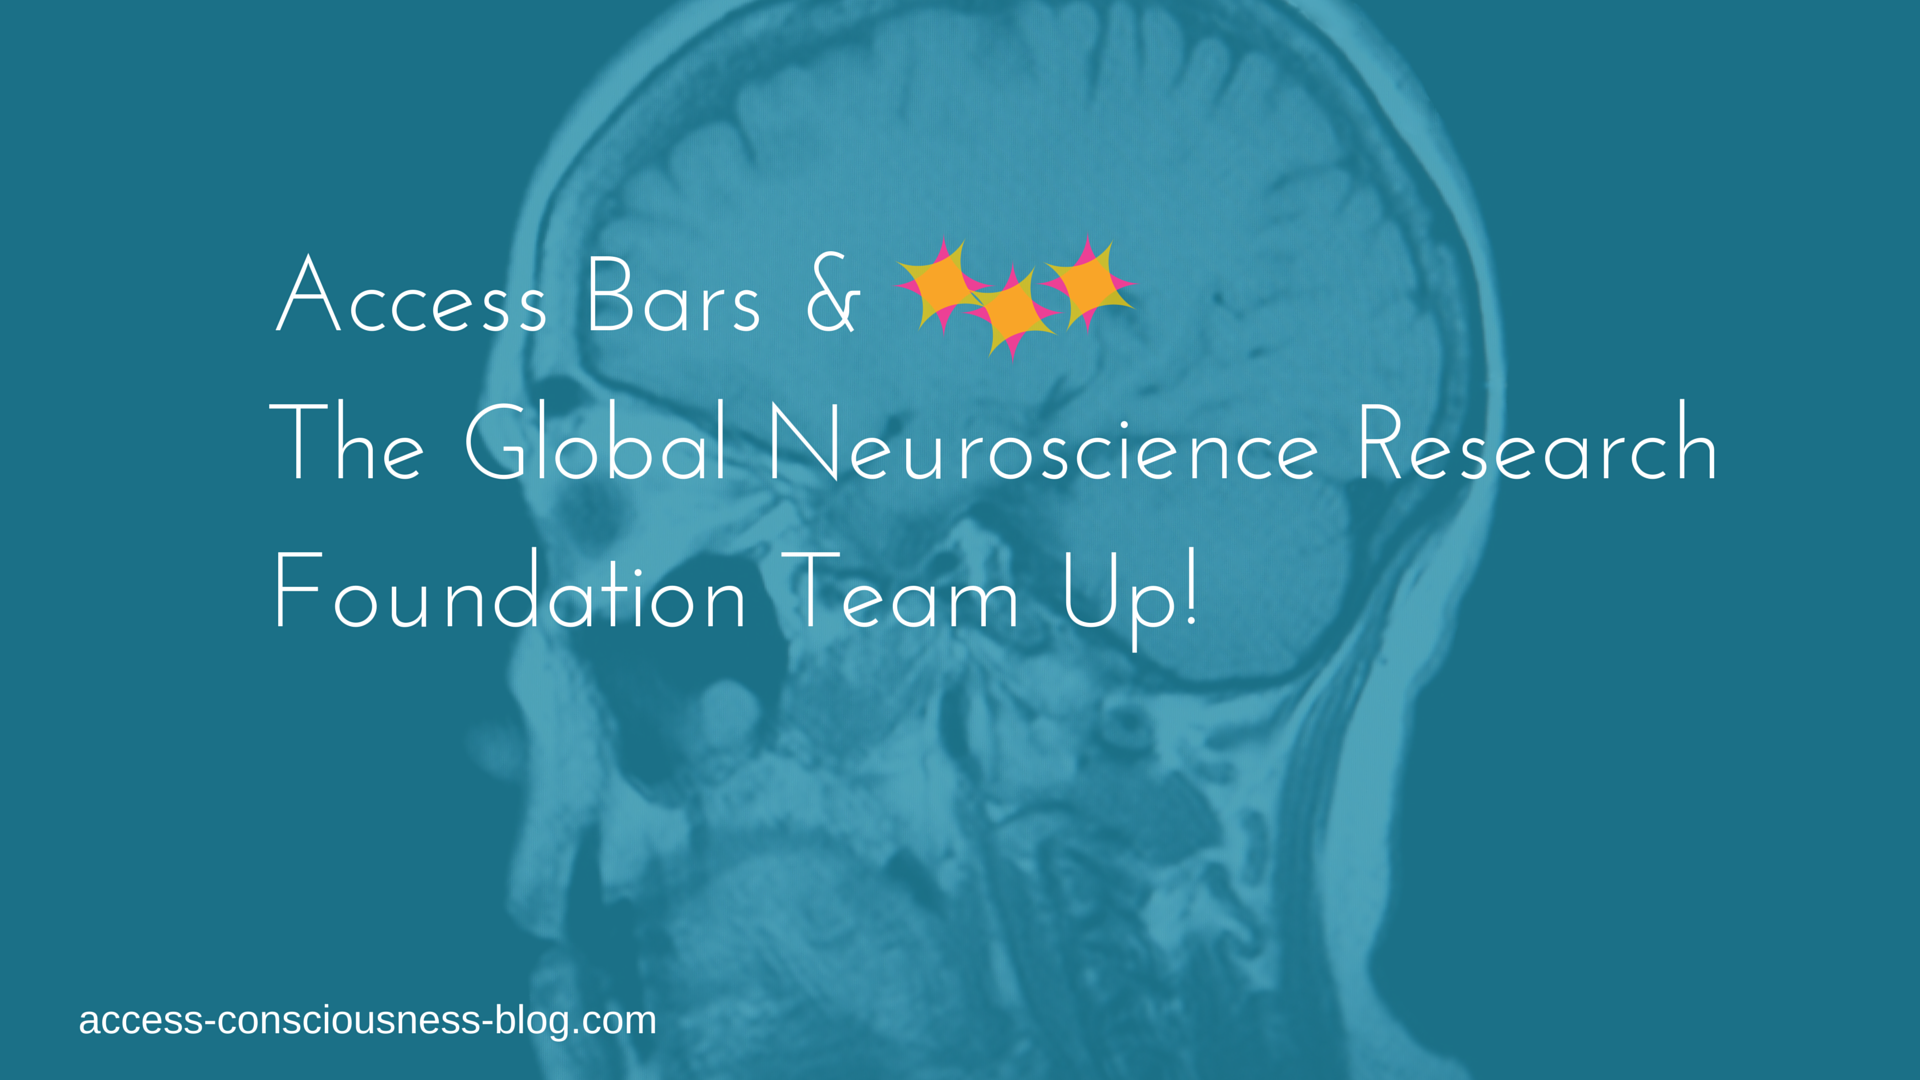 Access Bars & The Global Neuroscience Research Foundation Team Up!